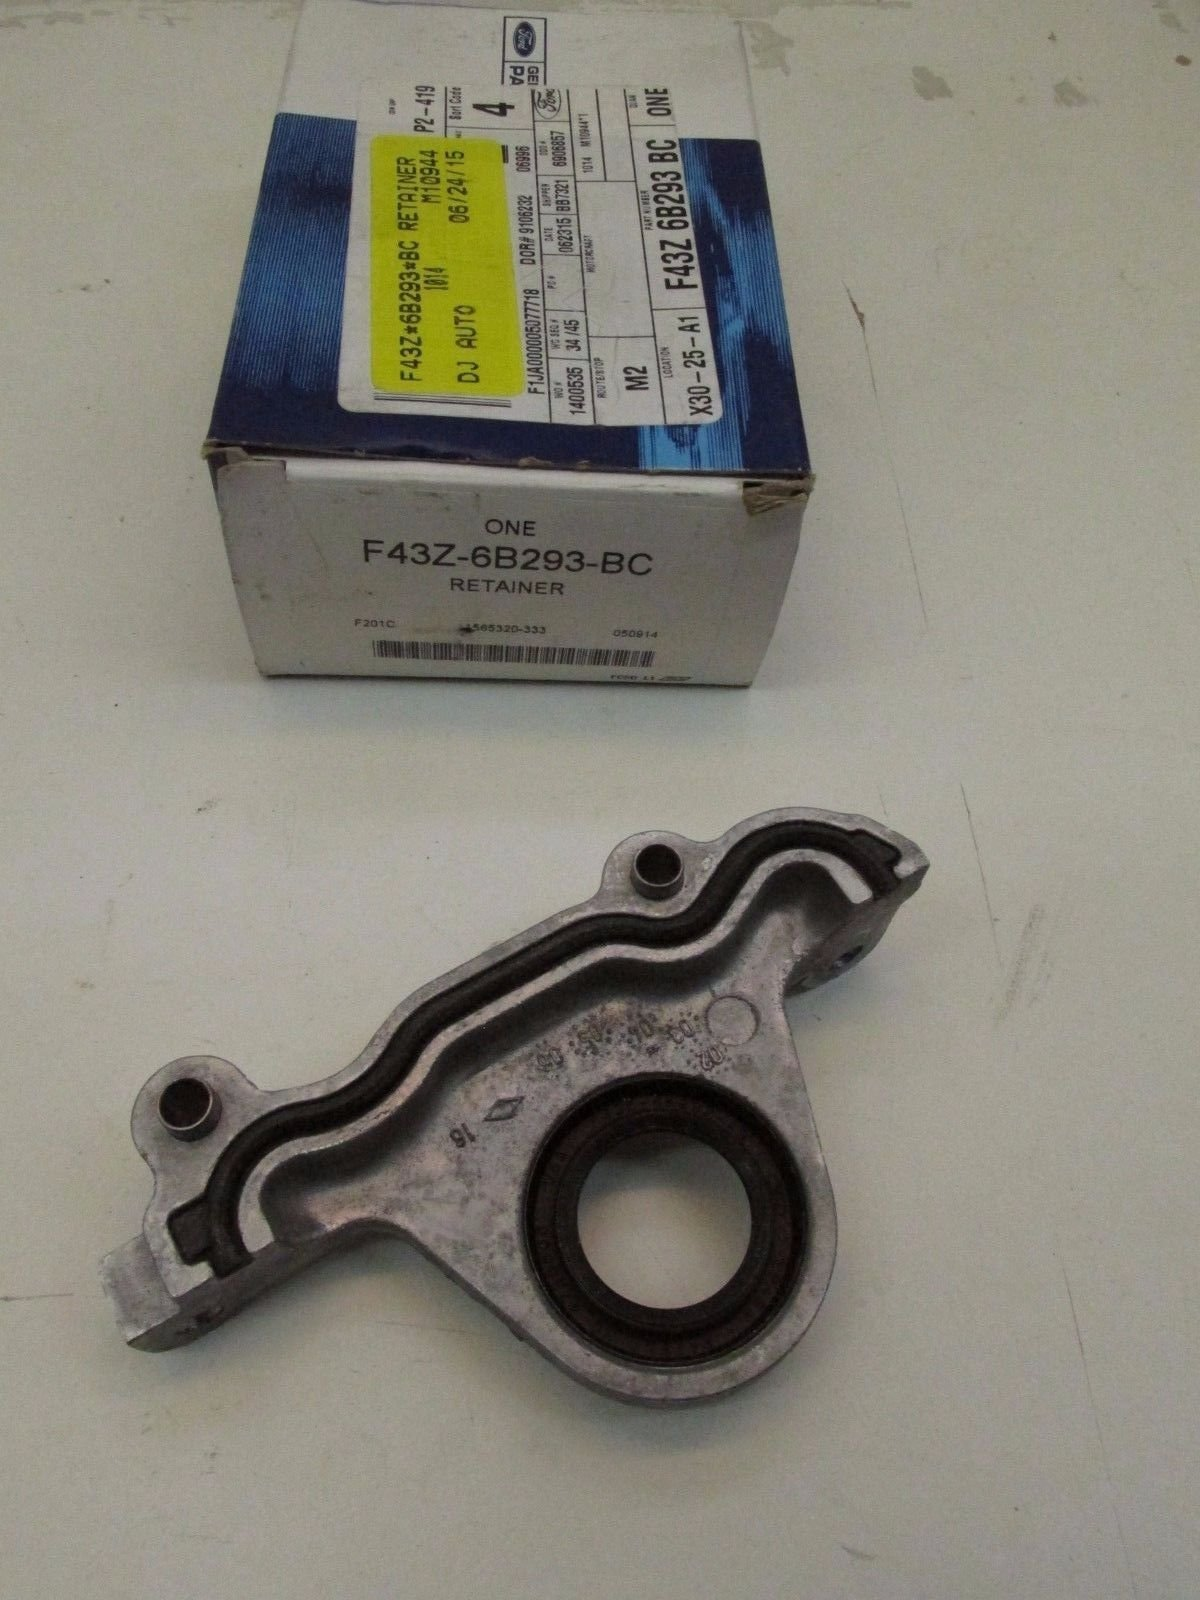 Ford F43Z-6B293-BC - RETAINER